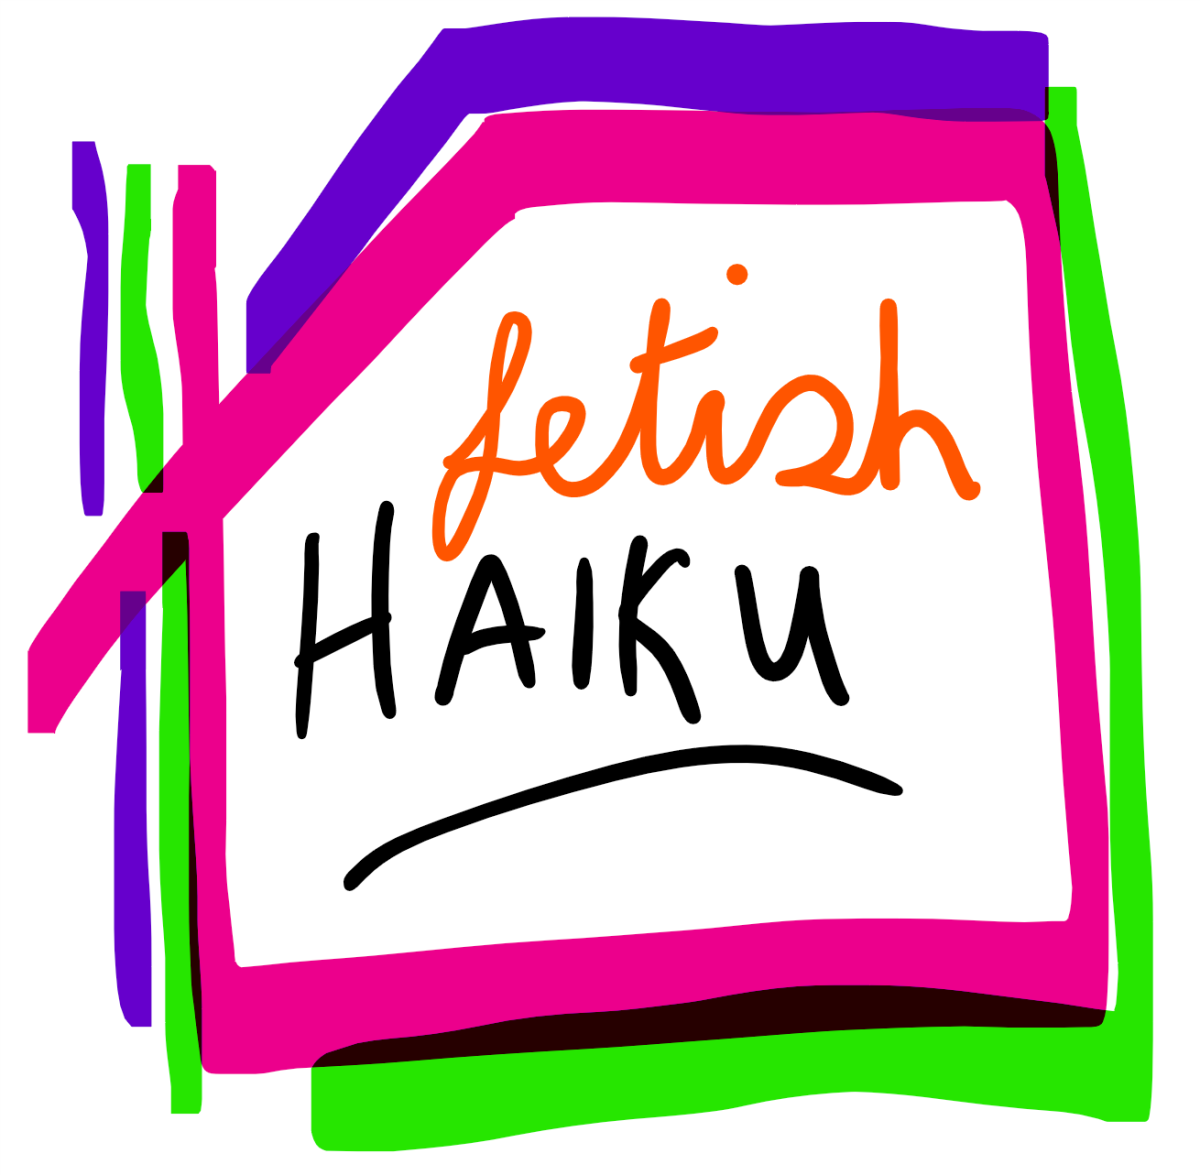 My Weekly Fetish Haiku – 15 December